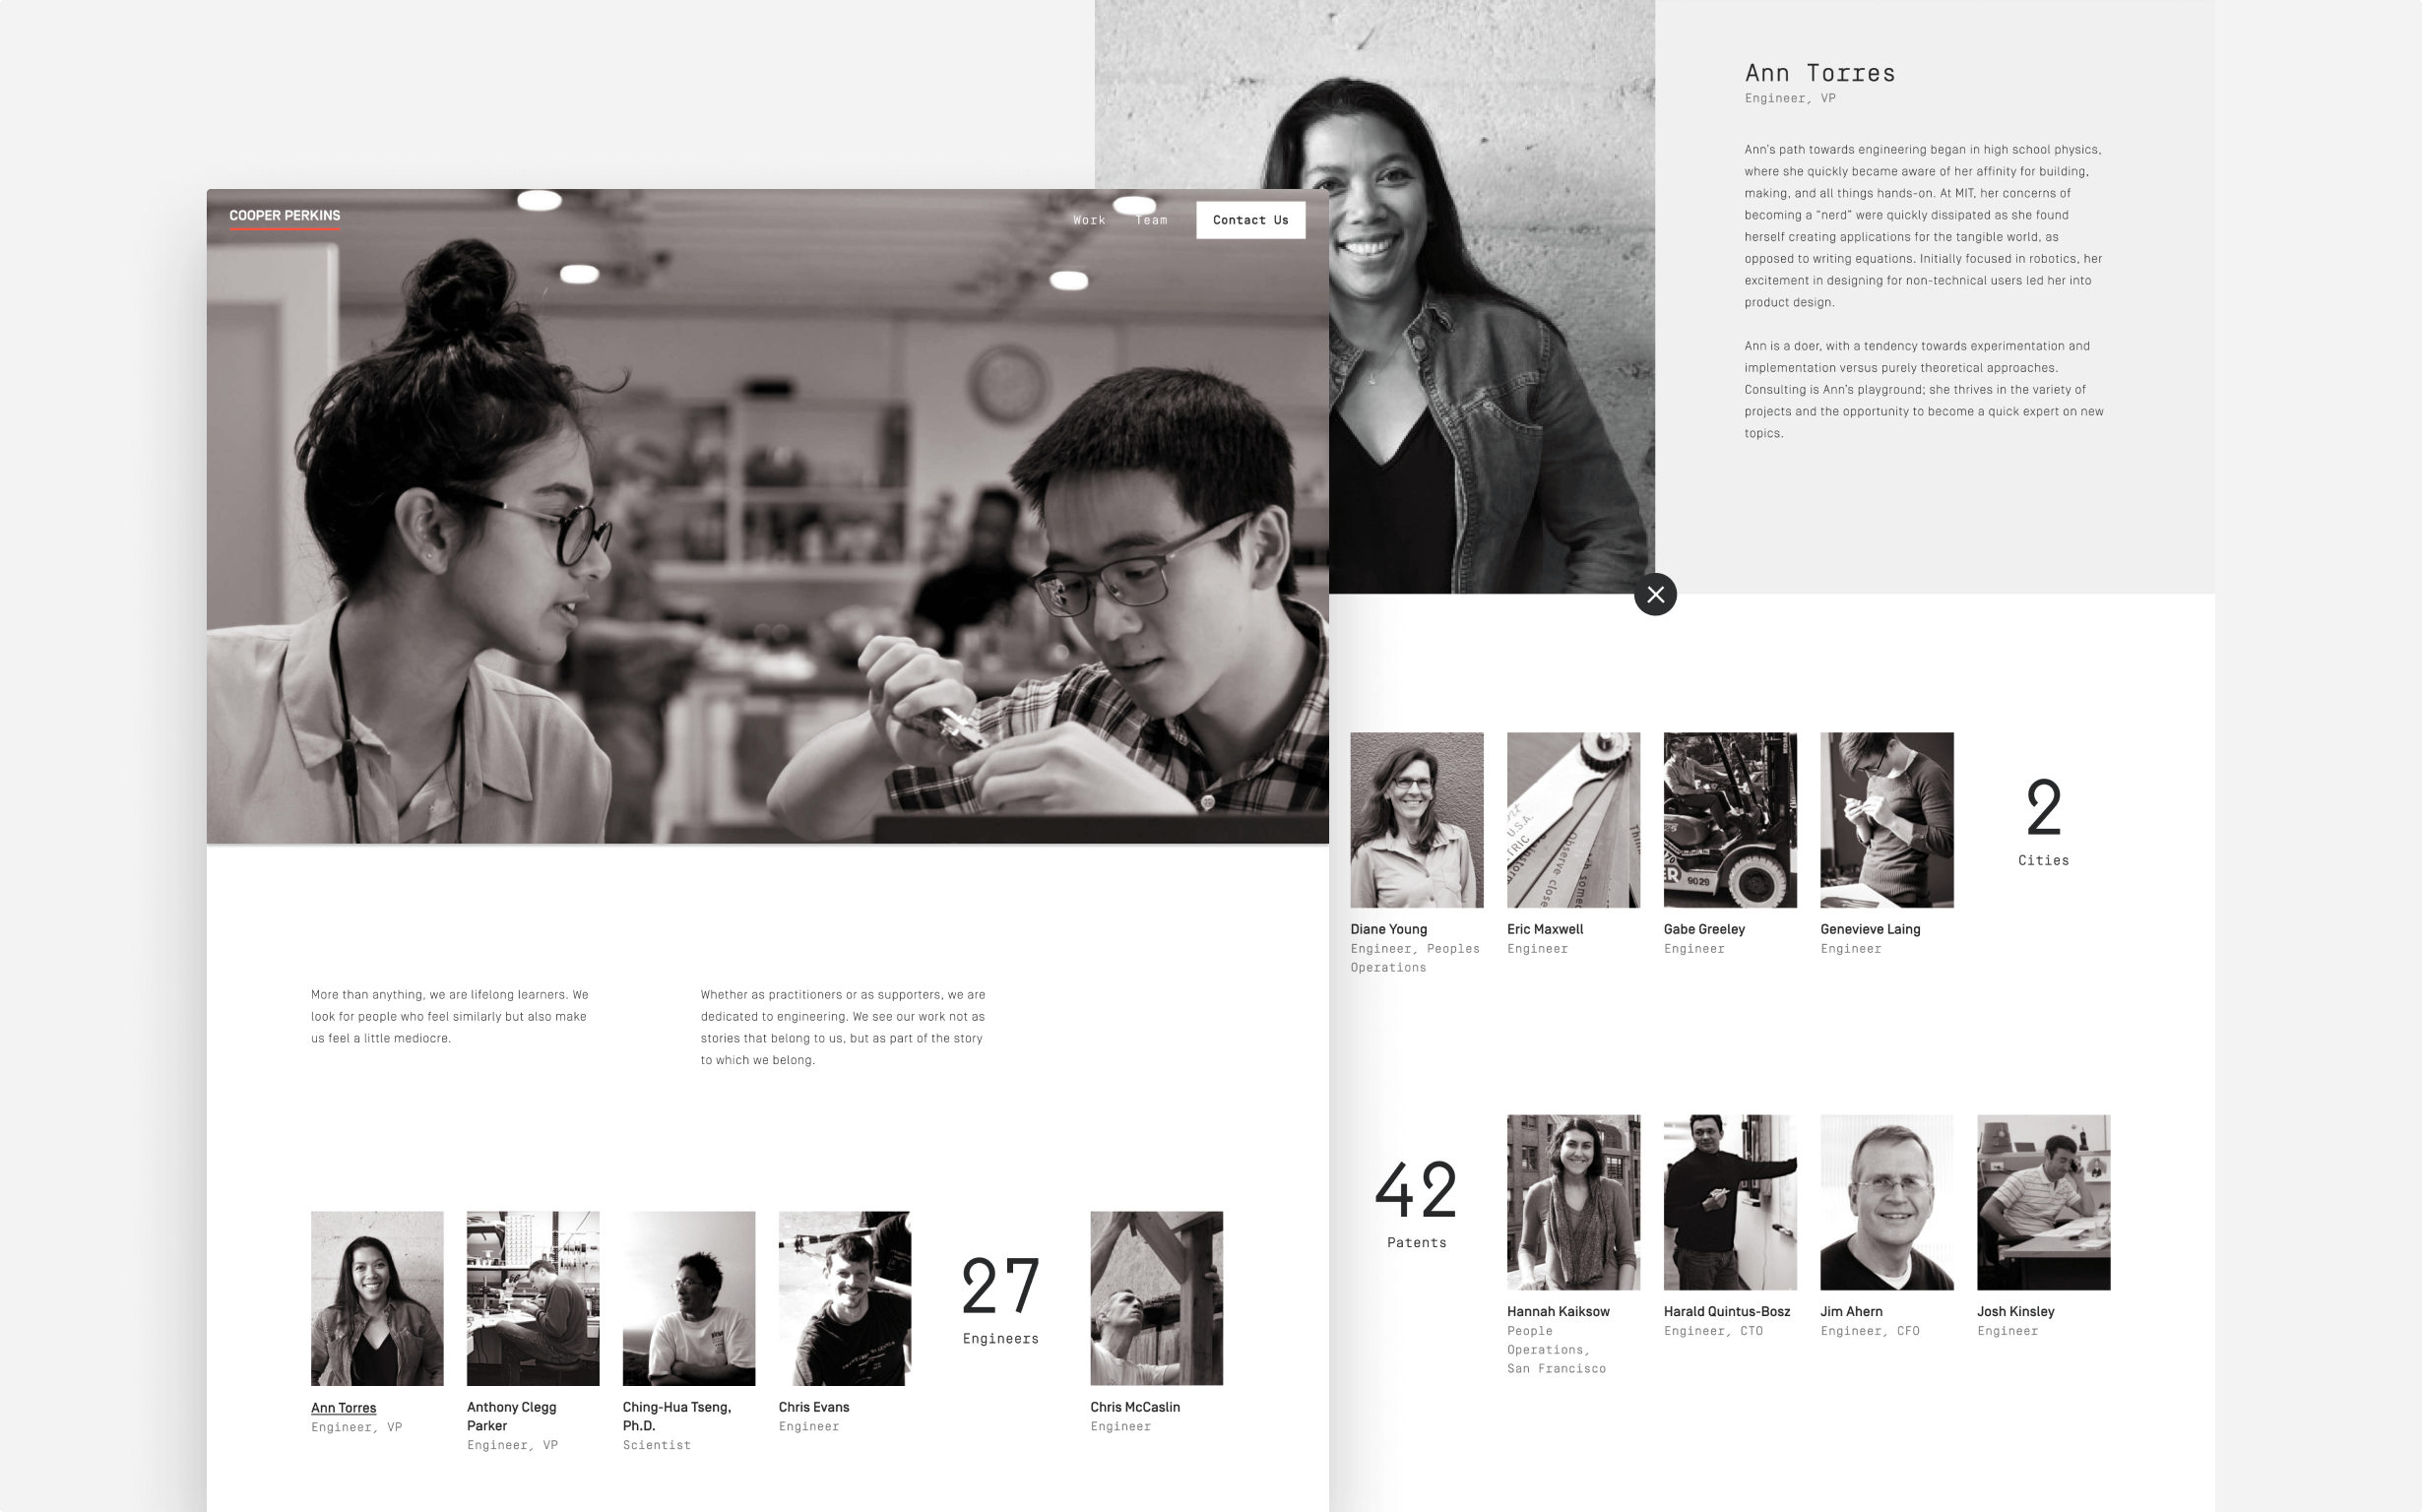 The final design for Cooper Perkins' About page shows profiles of their engineers.